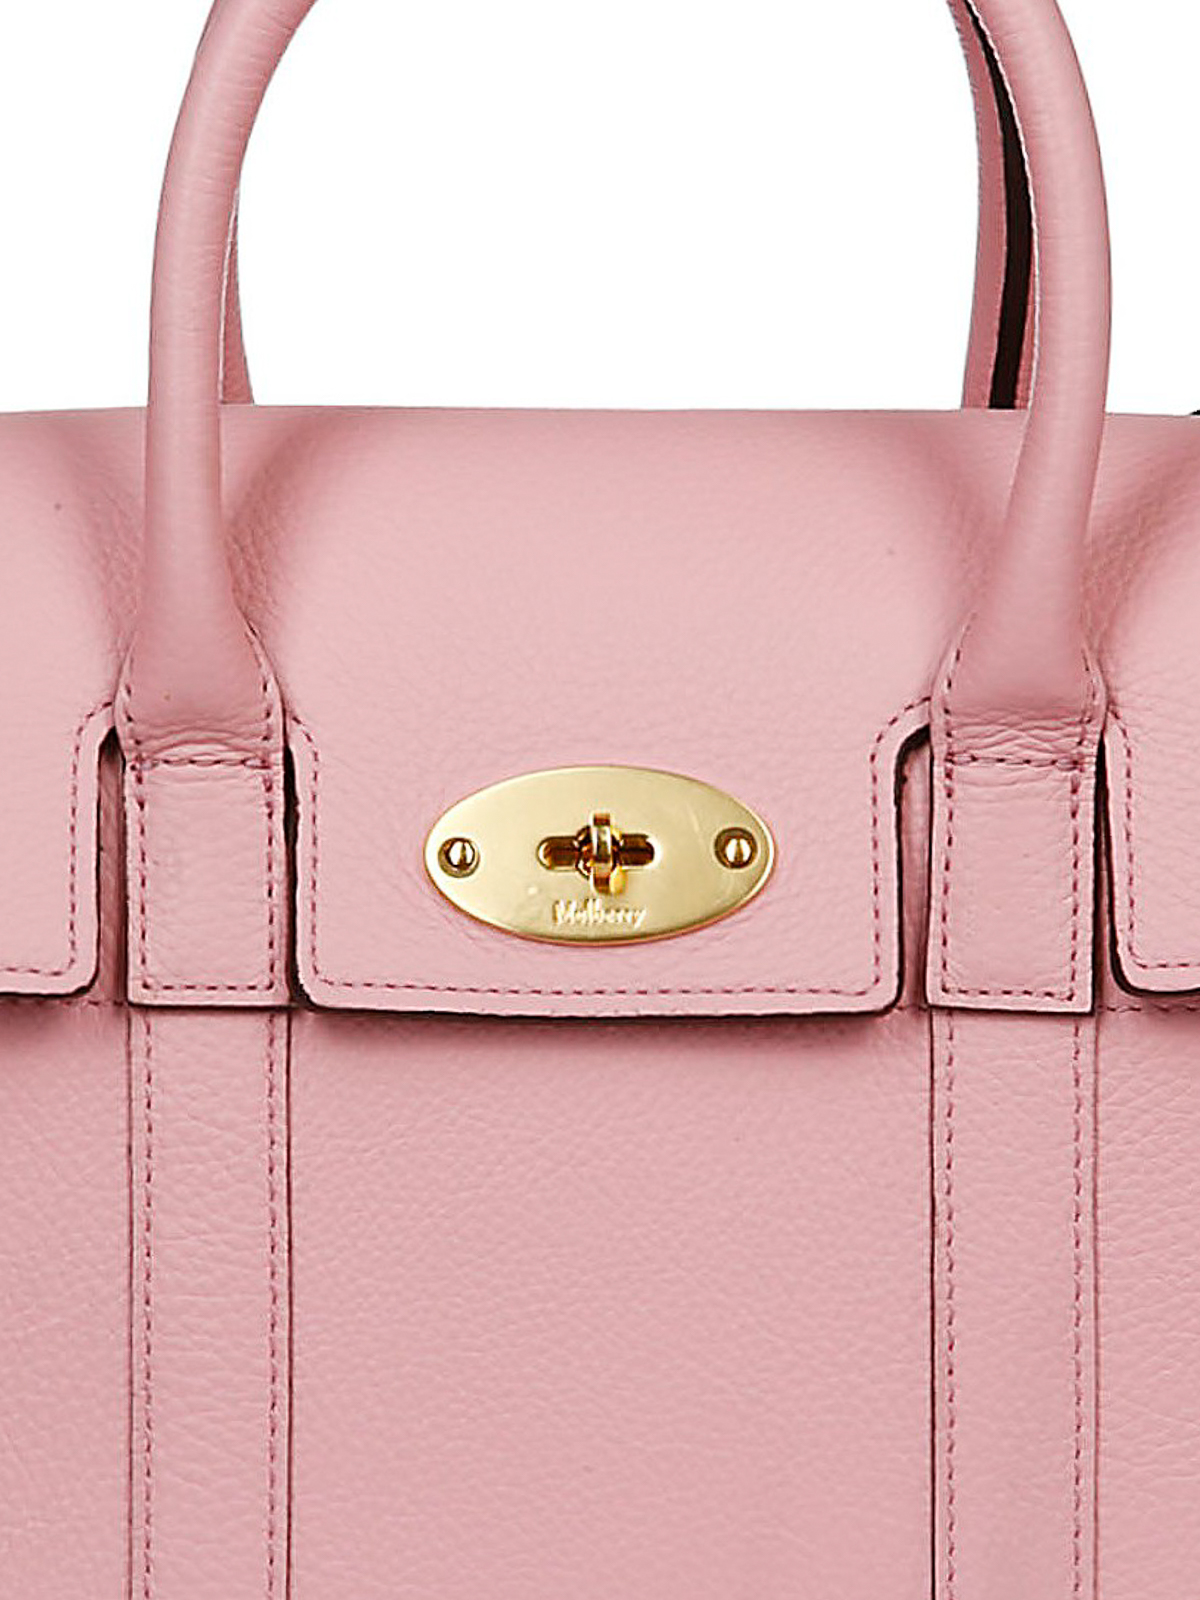 045b99b2d24 Mulberry - Bayswater sorbet pink leather small bag - totes bags ...